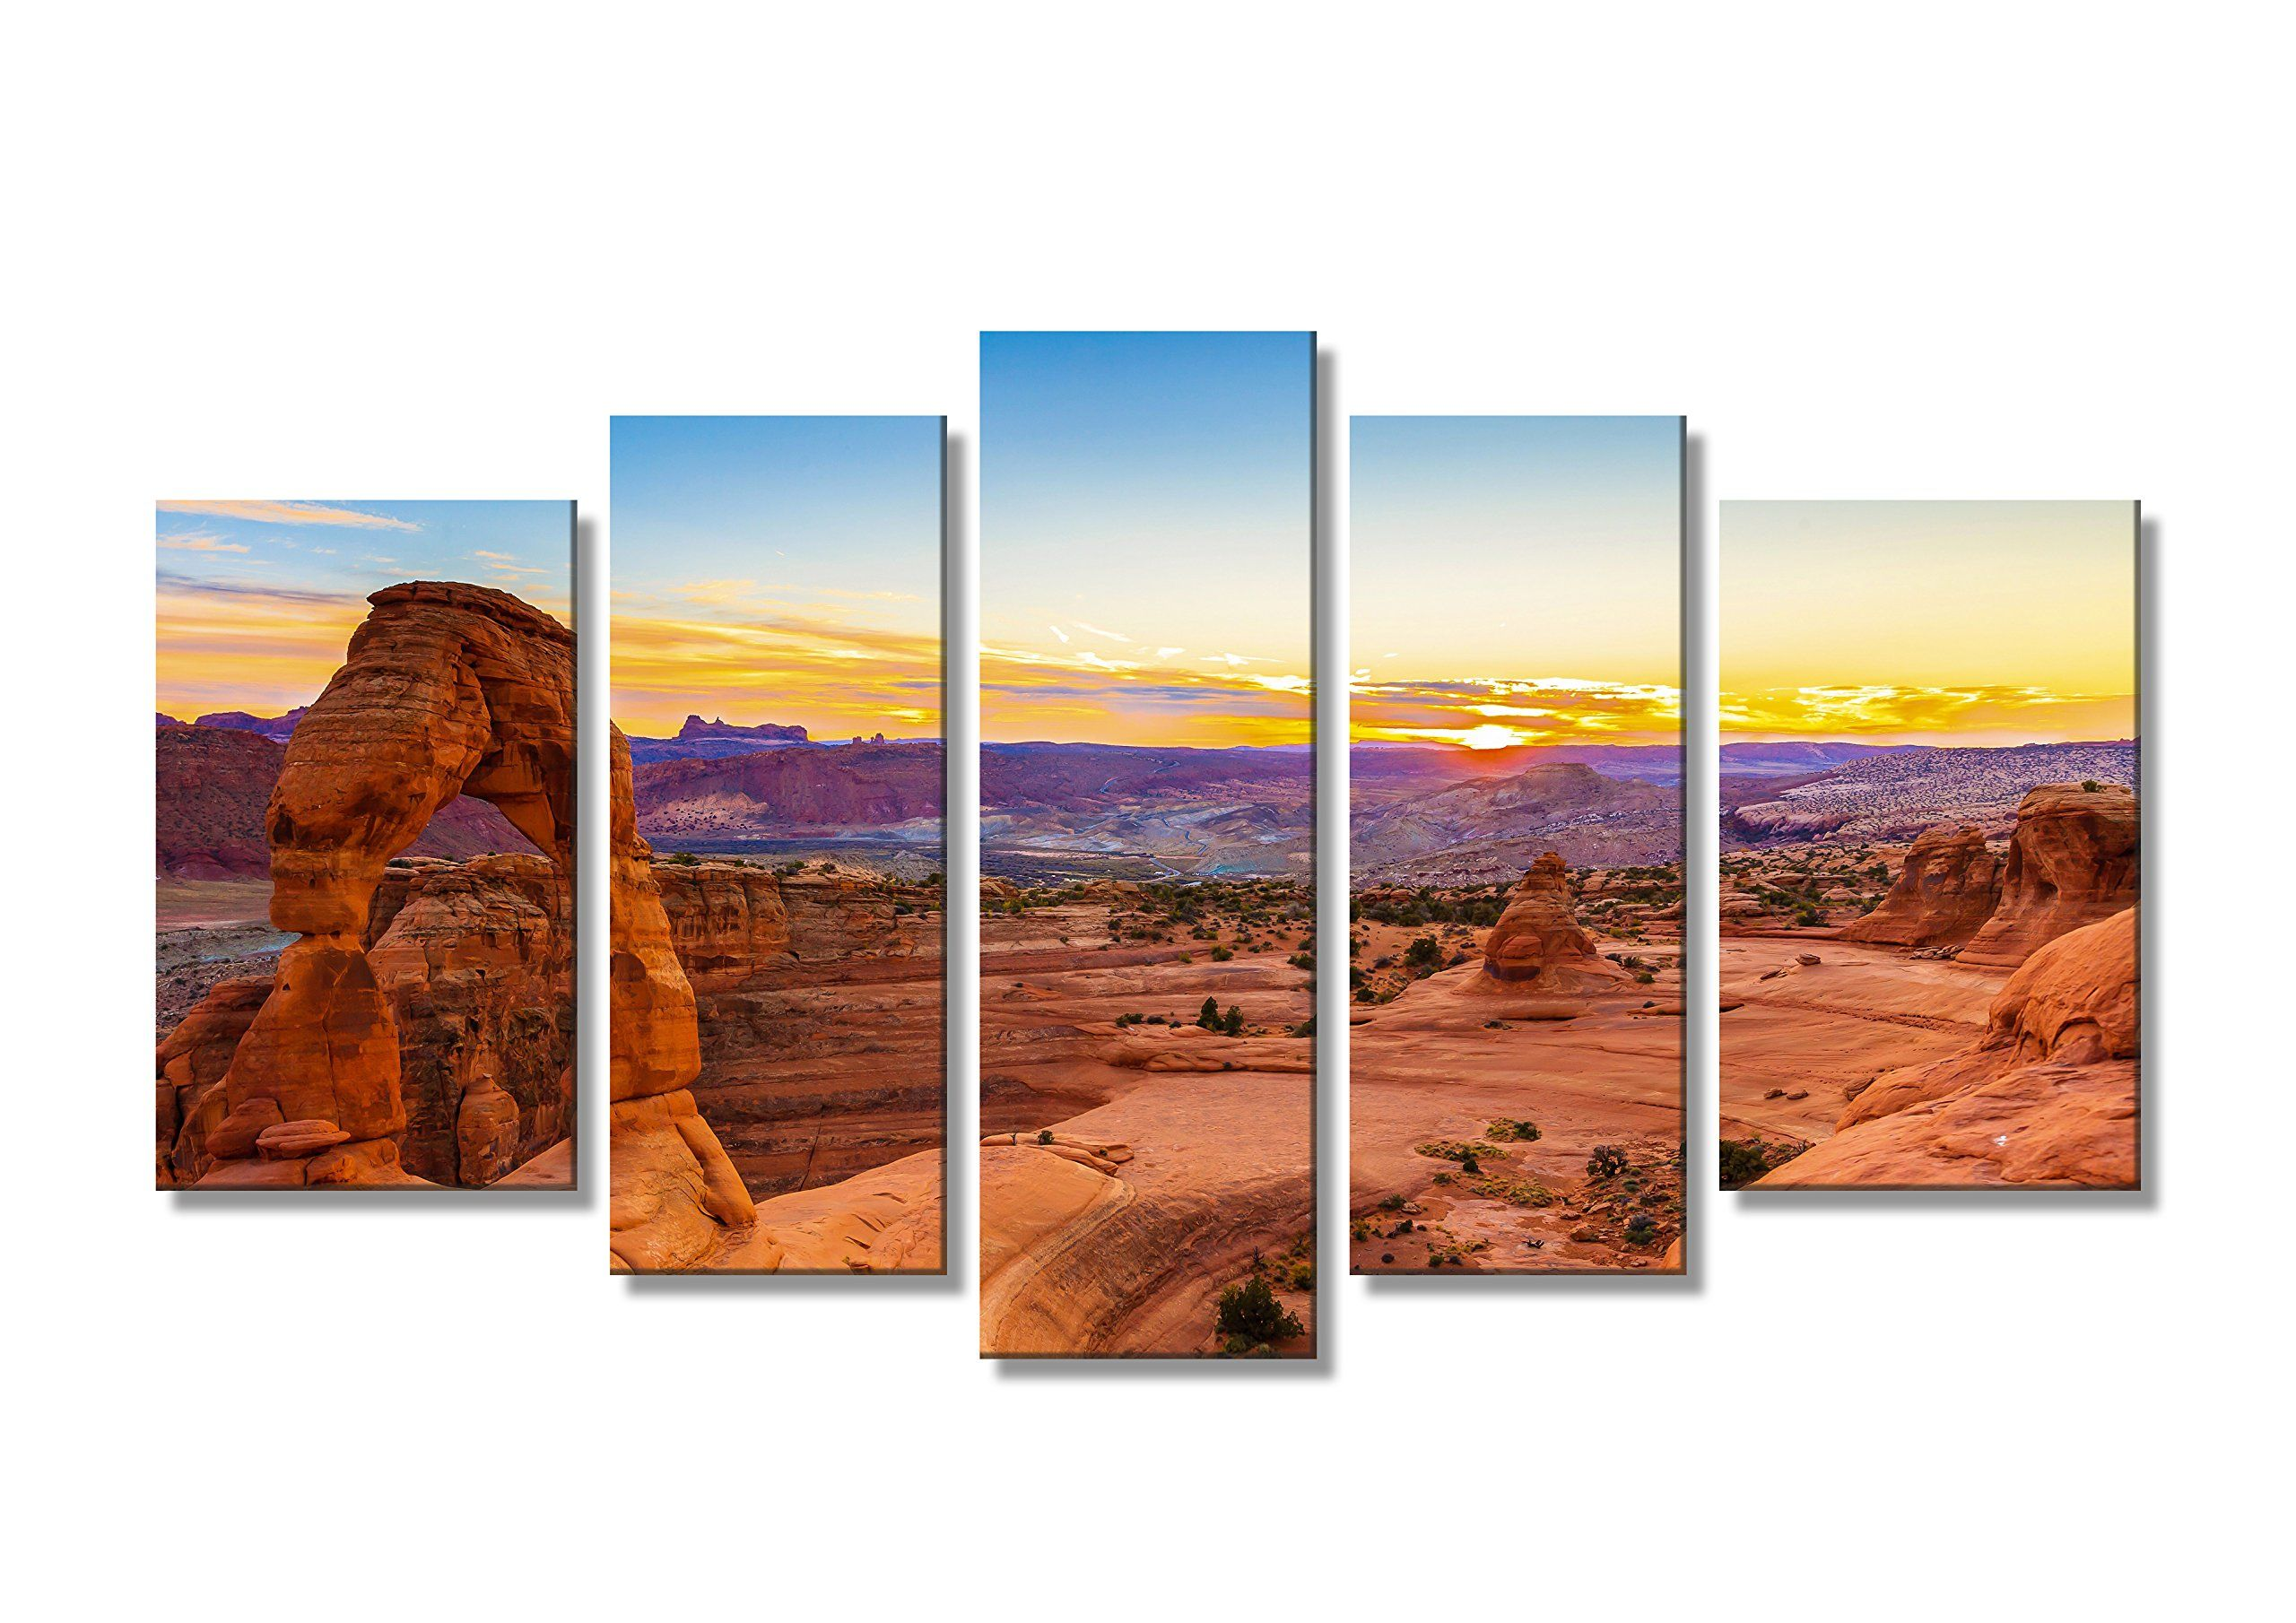 Ipainting Split Landscape Canvas Print Wall Art Framed Arches National Park Utah Usa In The Sunset 5 Panel Set Landscape Wall Art Landscape Canvas Wall Art